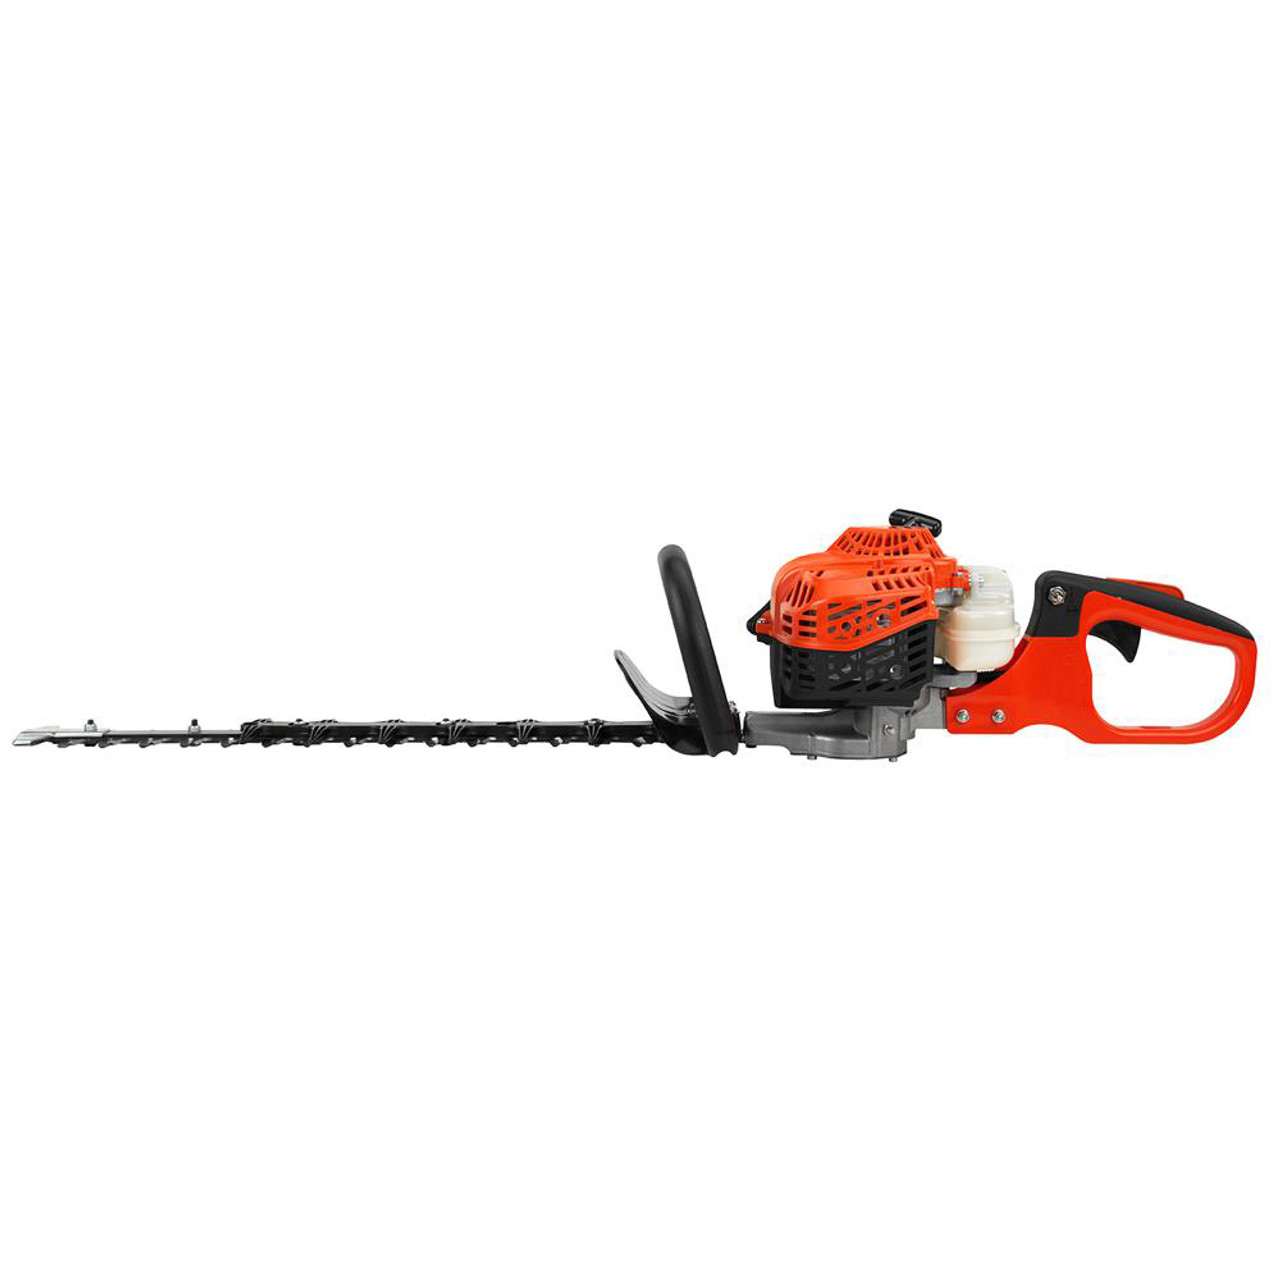 """ECHO HC-2020 21.1cc Hedge Trimmer w/ 20"""" Double-Sided Blades Image 4"""